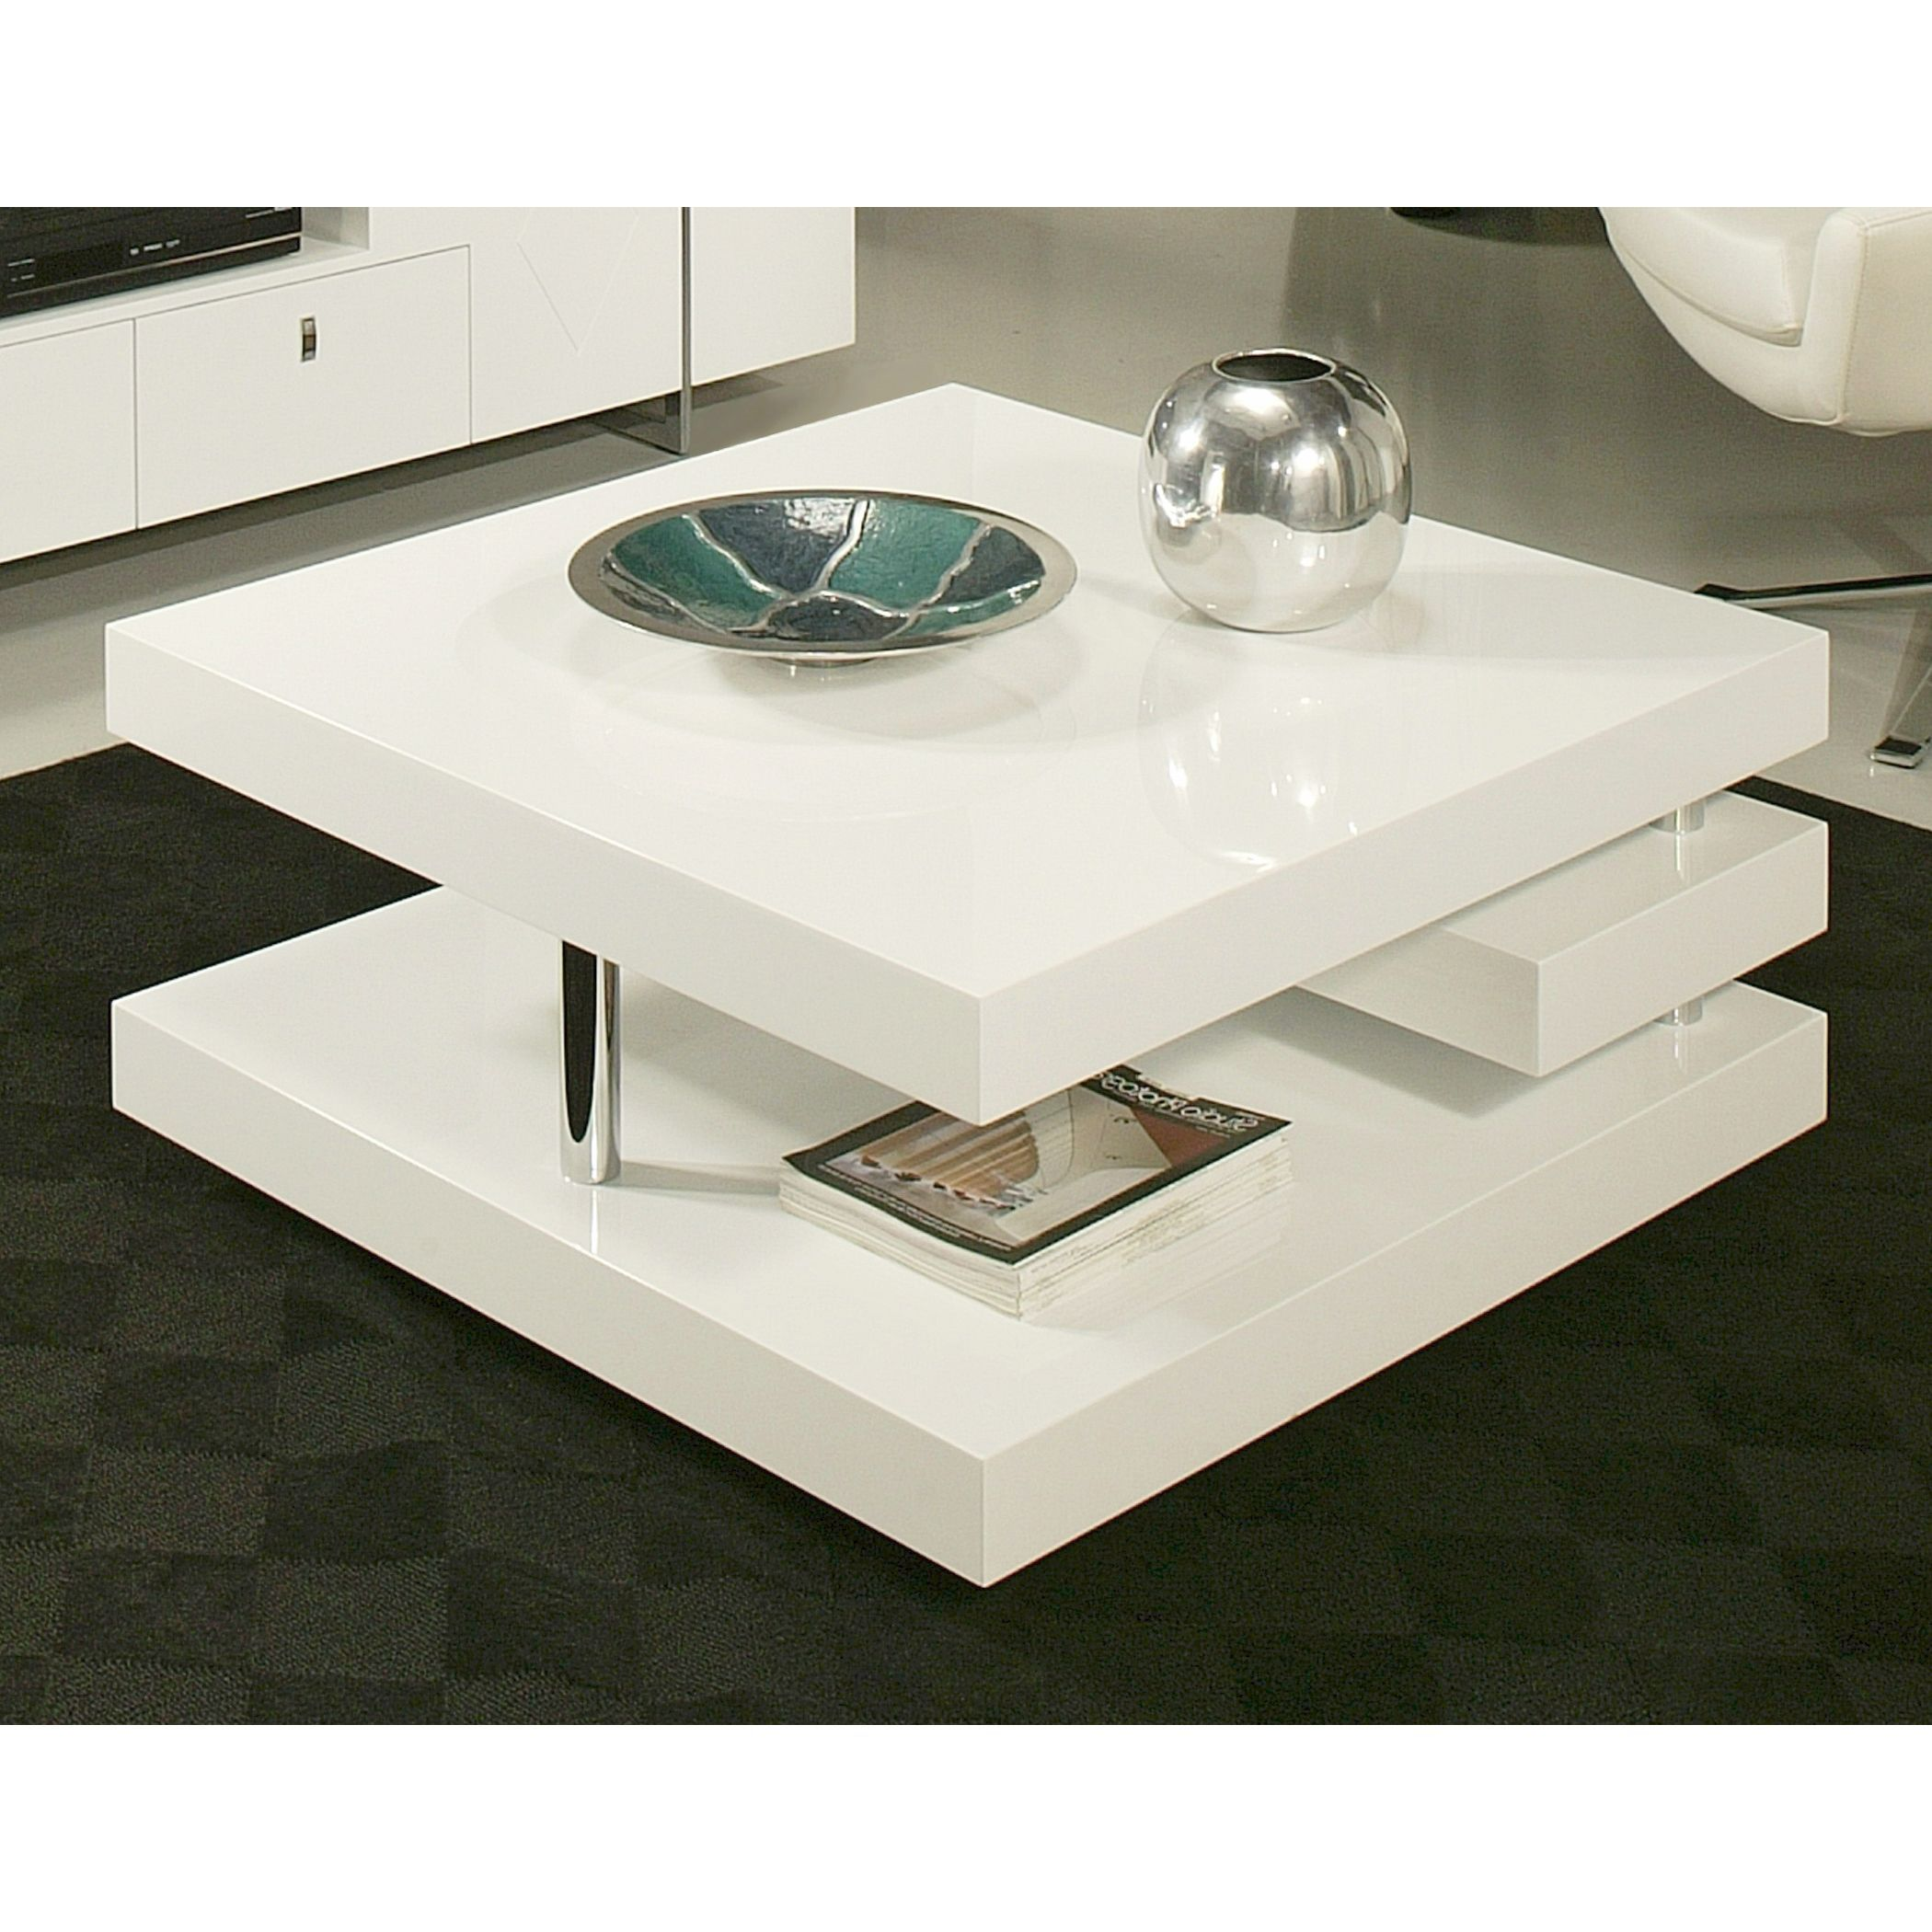 95bb1c543c80154d272030a66edc0f8d Top Result 50 Unique Expandable Coffee Table